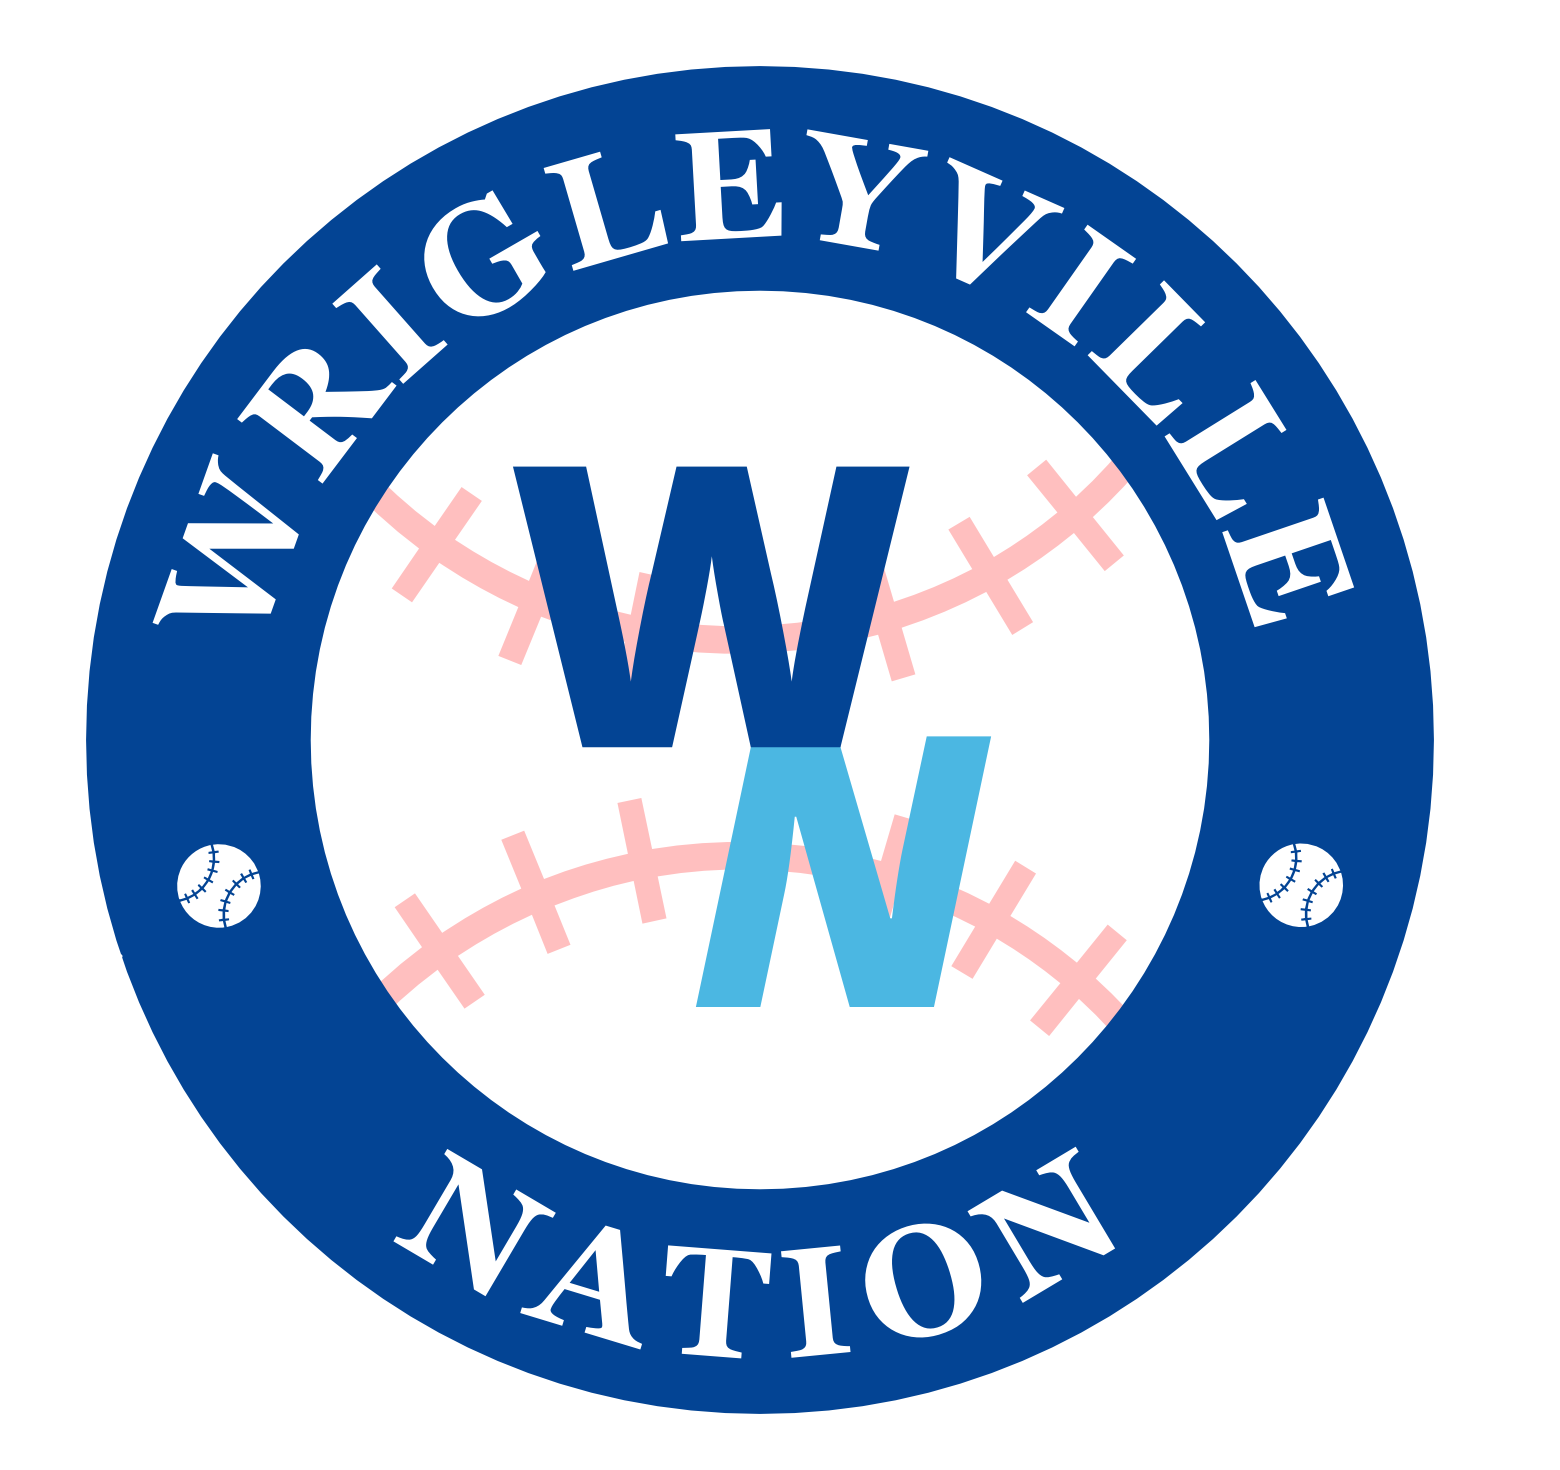 Artwork for Wrigleyville Nation Ep 197 - Guest: Dave Wischnowsky, Remembering Bill Buckner, Bryant Injured, Recaps, News, & More